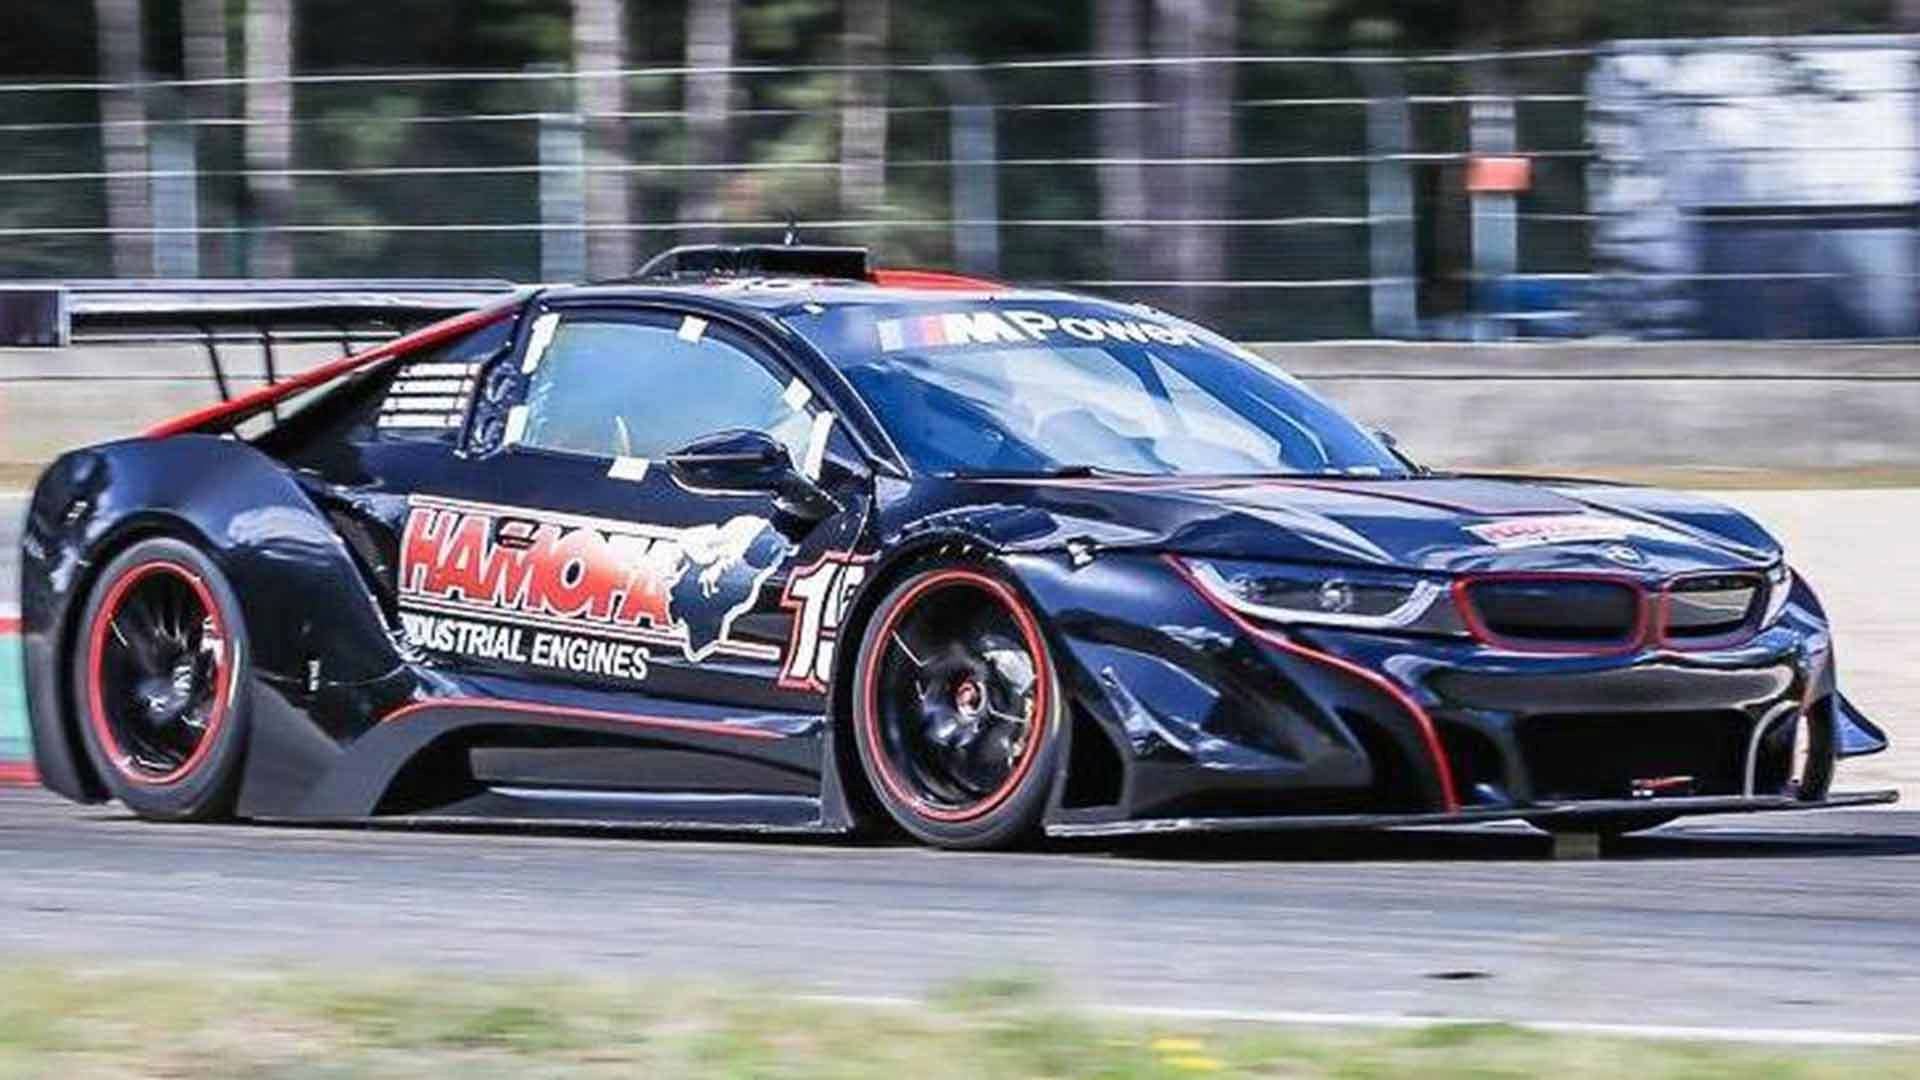 Bmw I8 Race Car Ditches Hybrid For 540 Hp V8